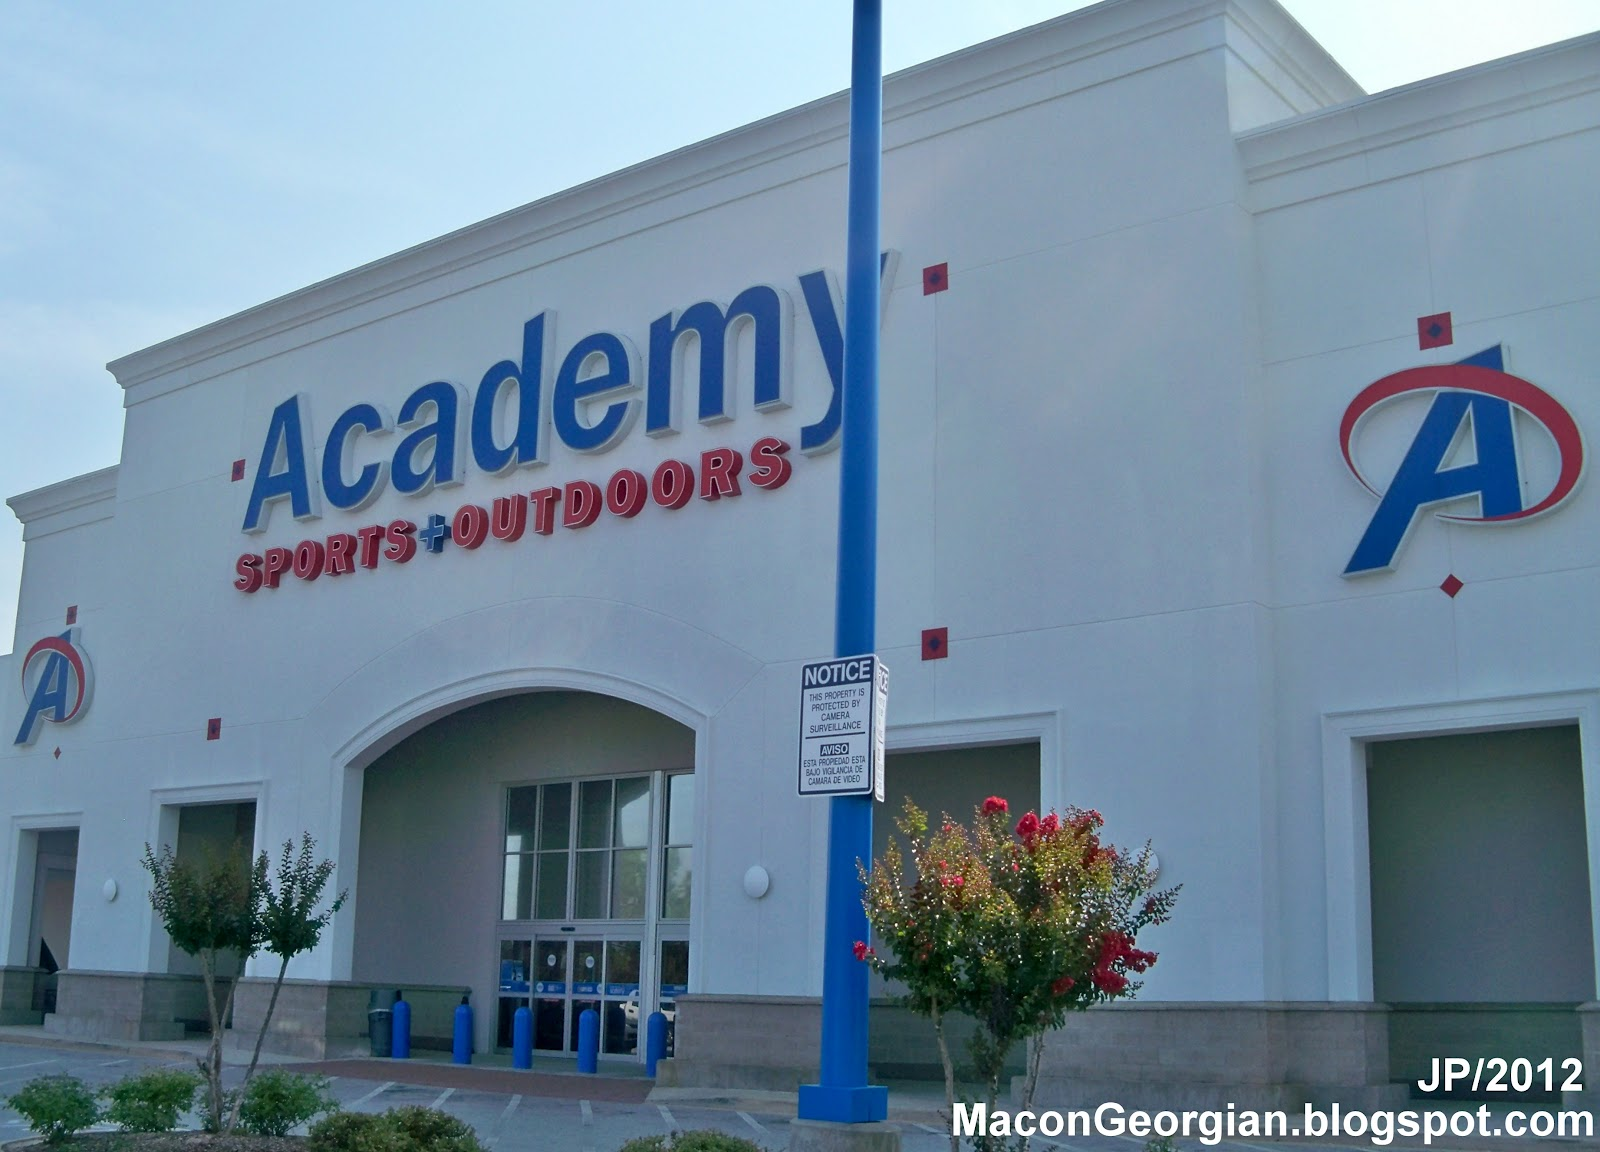 Academy Sports Locator Research the store hours, location maps, and printable coupons for local Academy Sports. The locations of the local Academy Sports are useful, but don't you want the hours of operation and free online coupons?